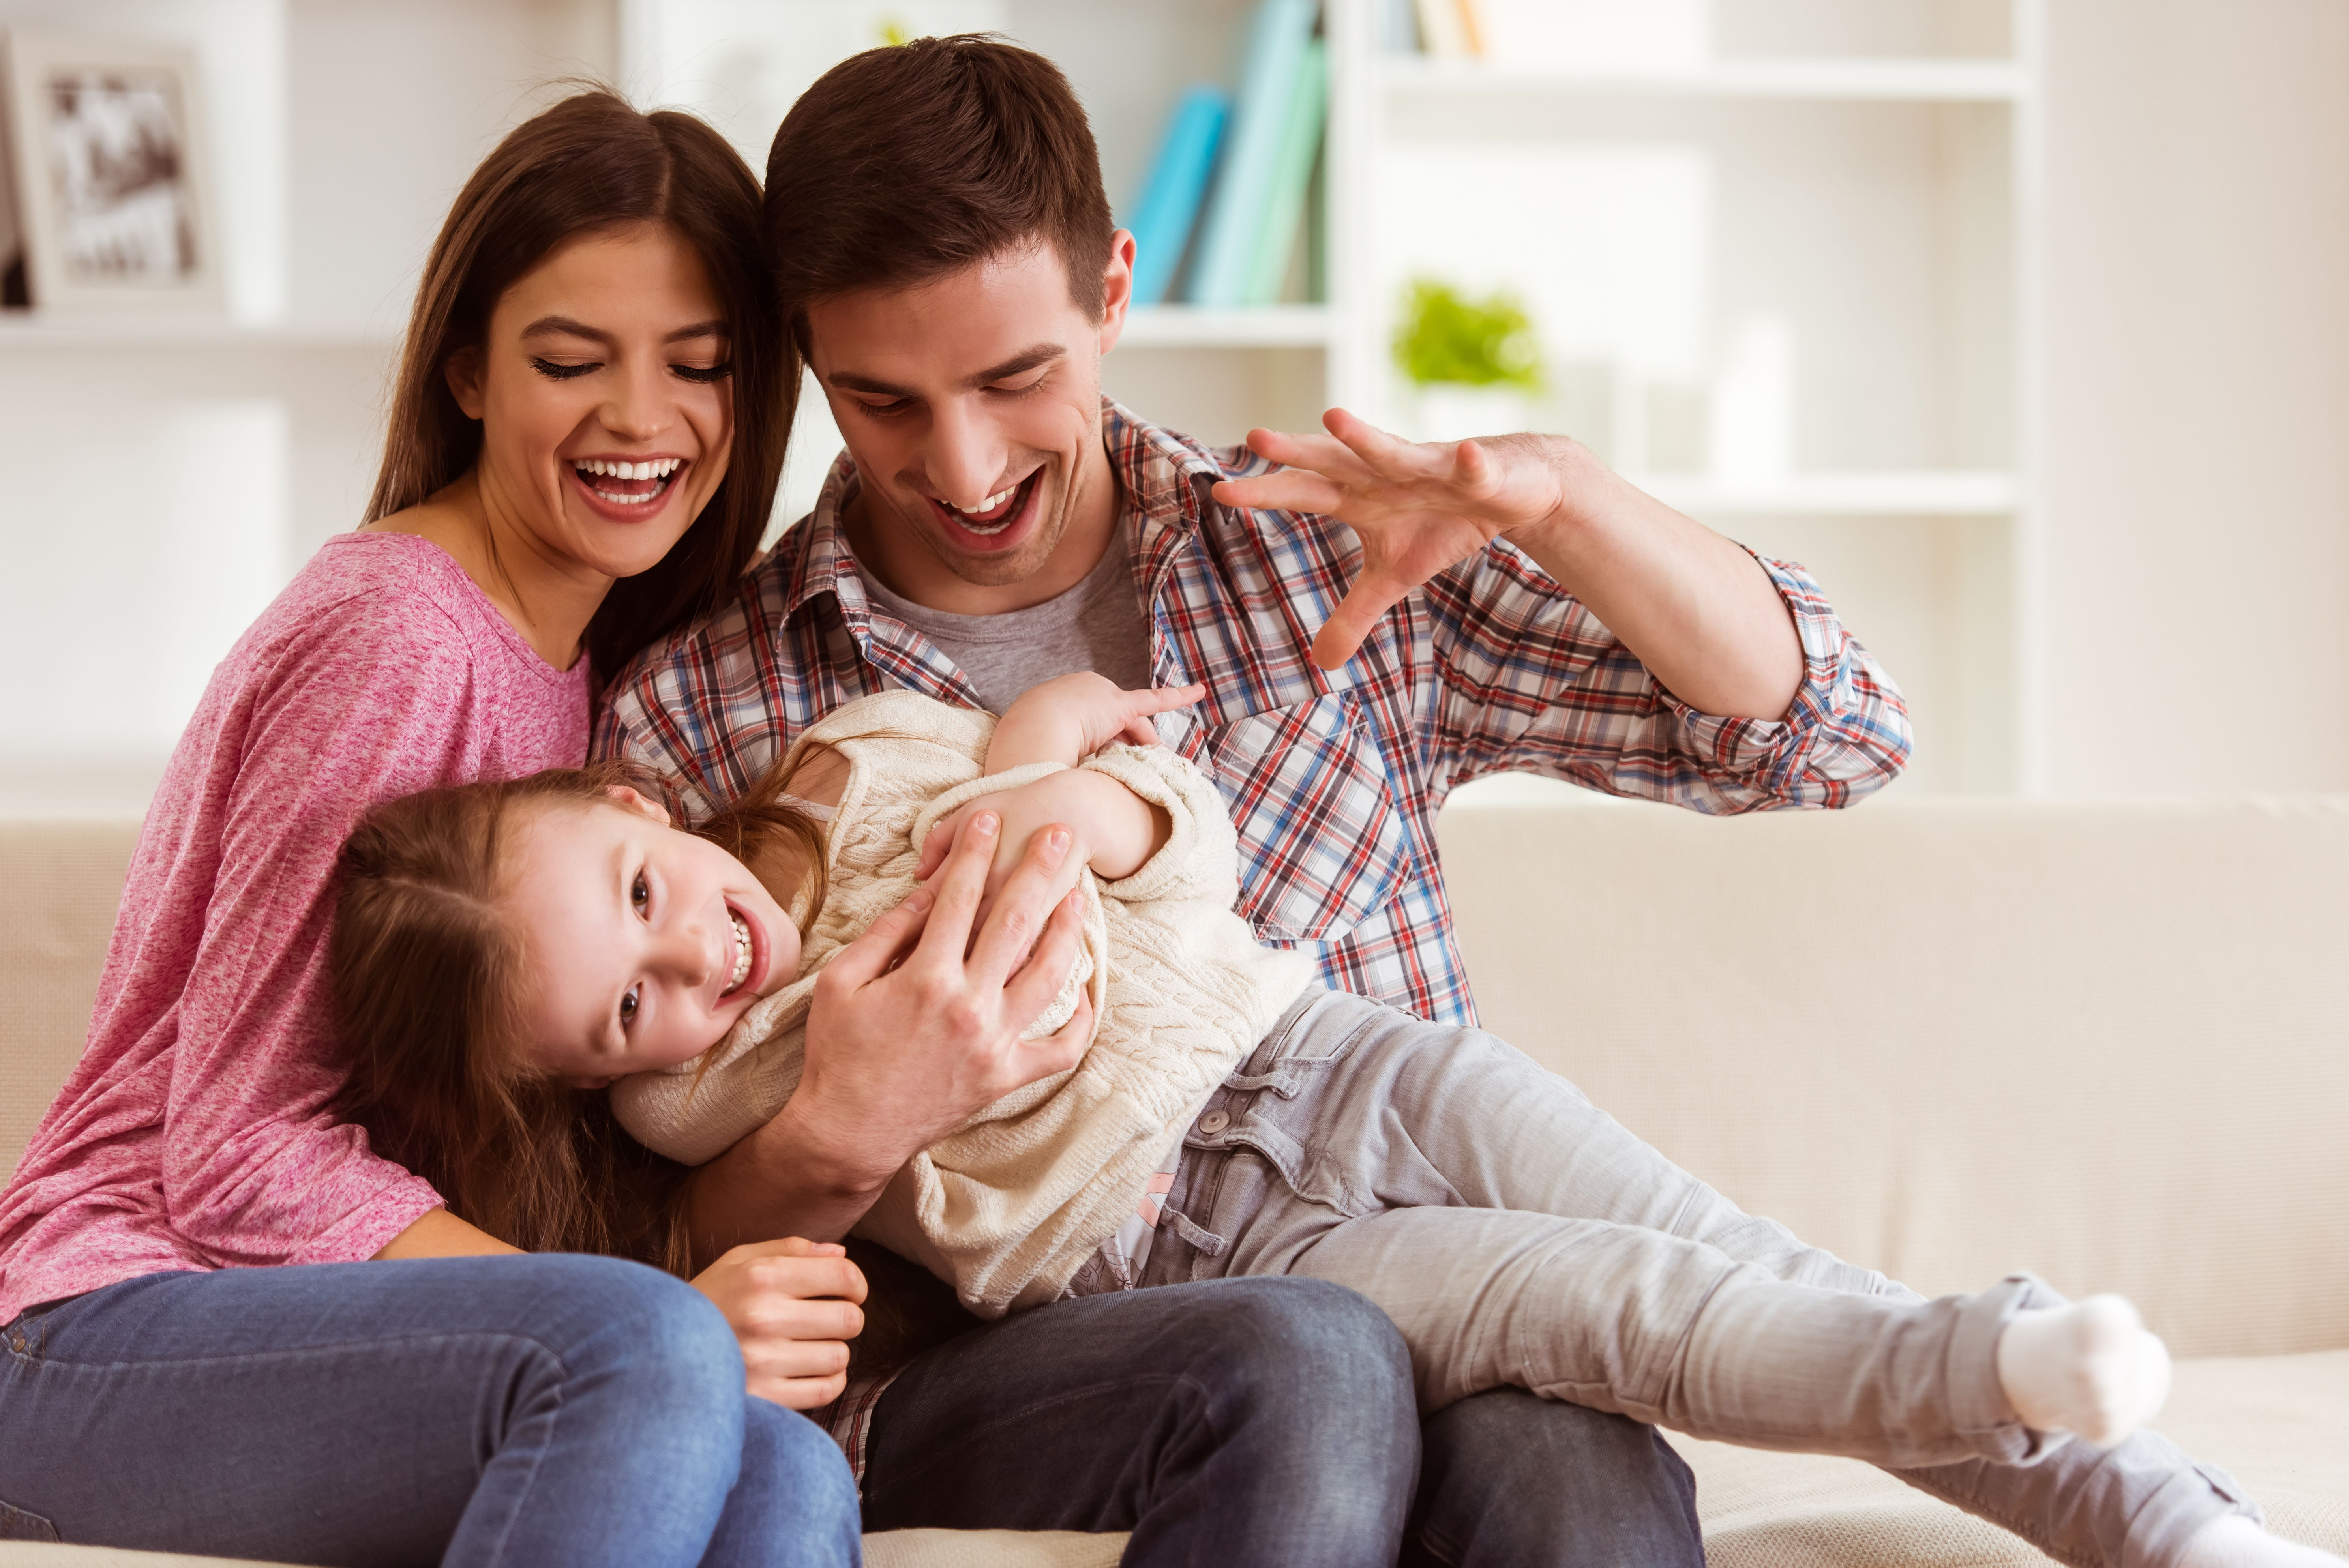 A little girl playing with her parents.   Source: Shutterstock